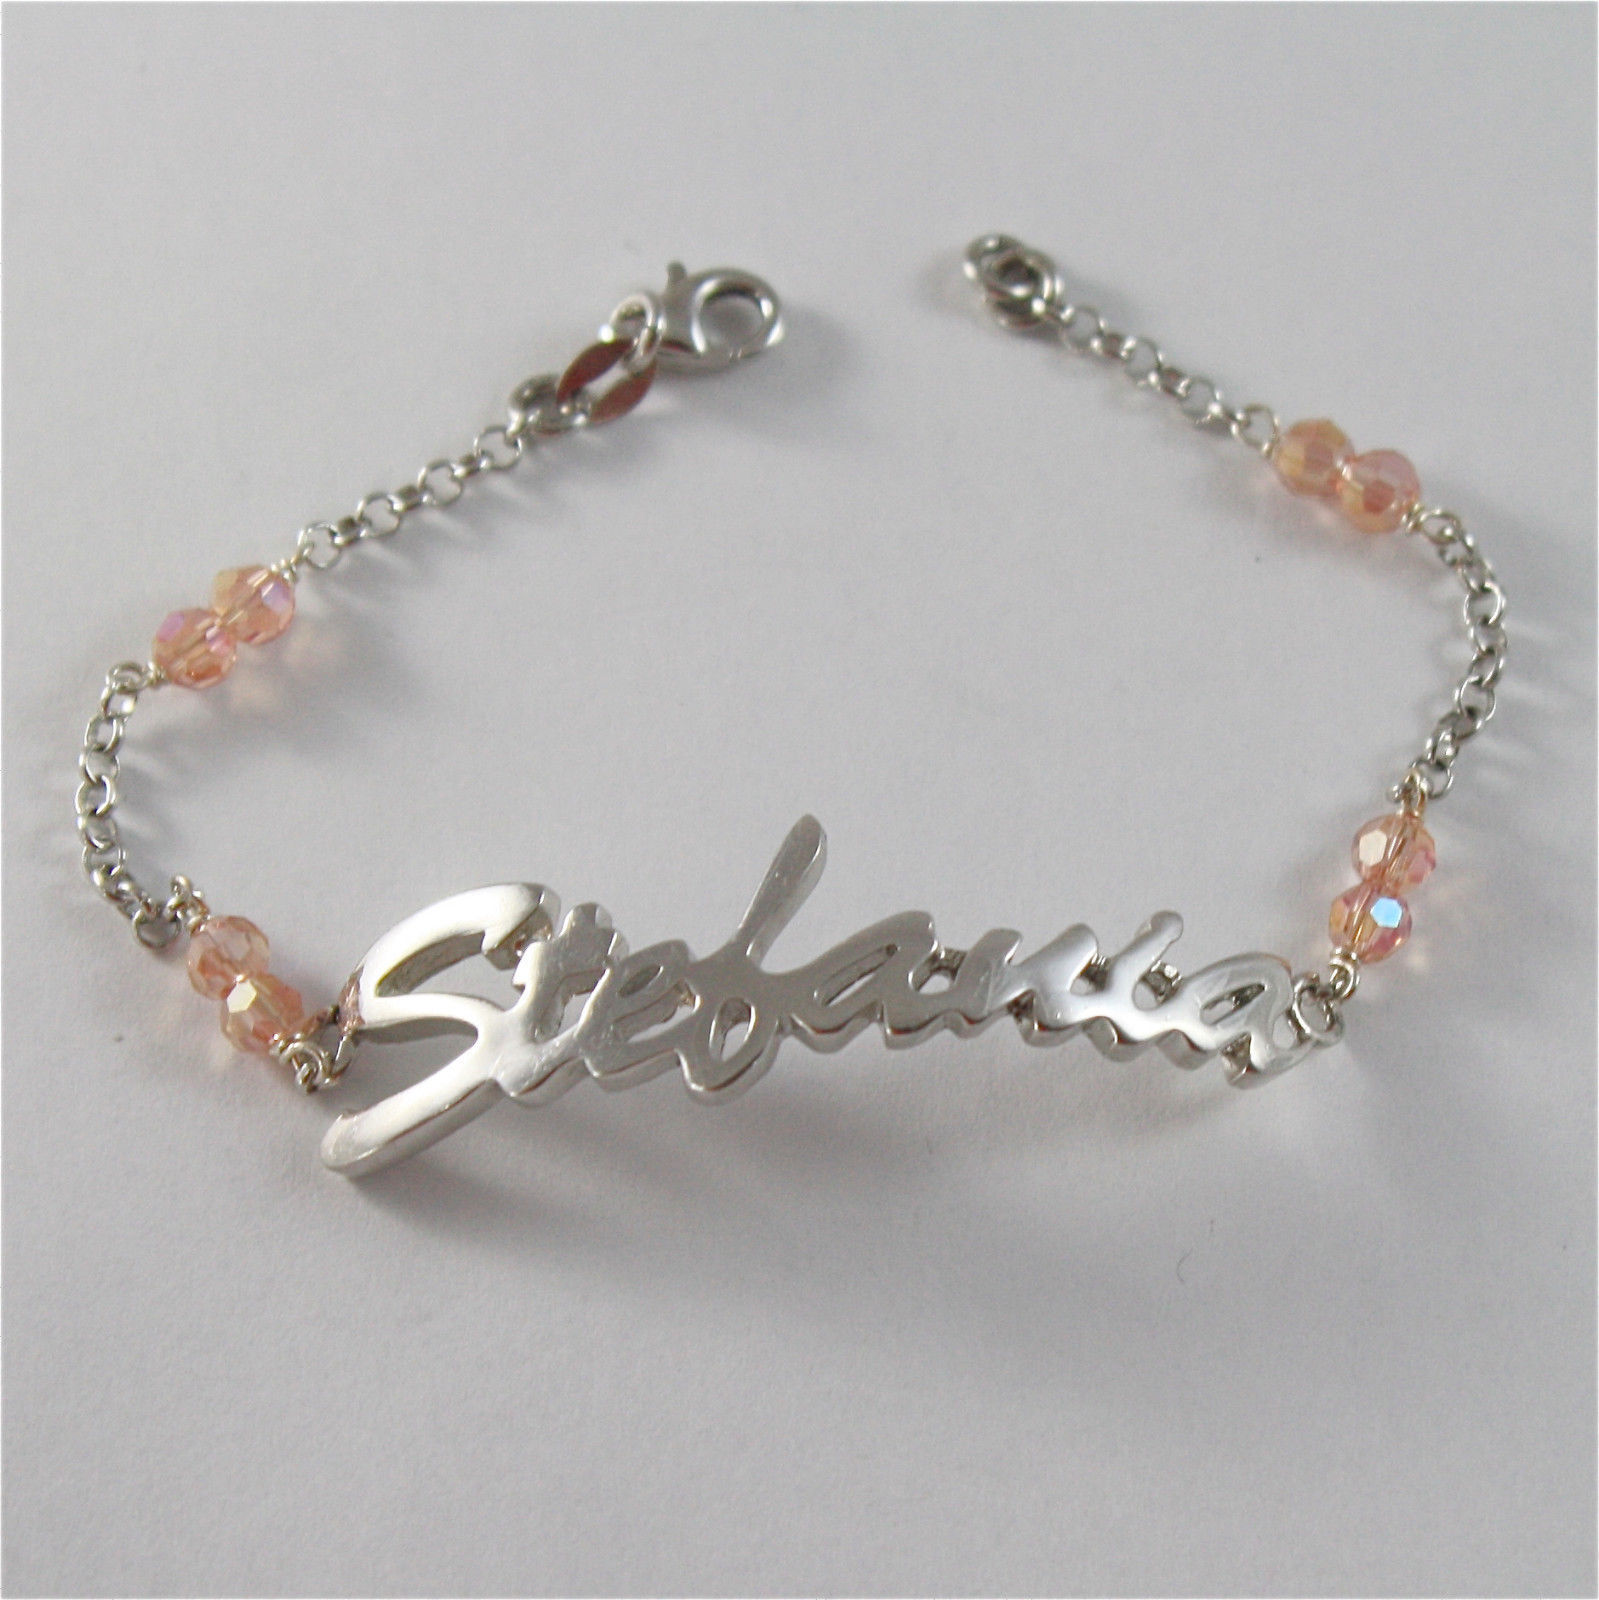 925 SILVER BRACELET WITH NAME STEFANIA & CUBIC ZIRCONIA MADE IN ITALY 79,00 USD